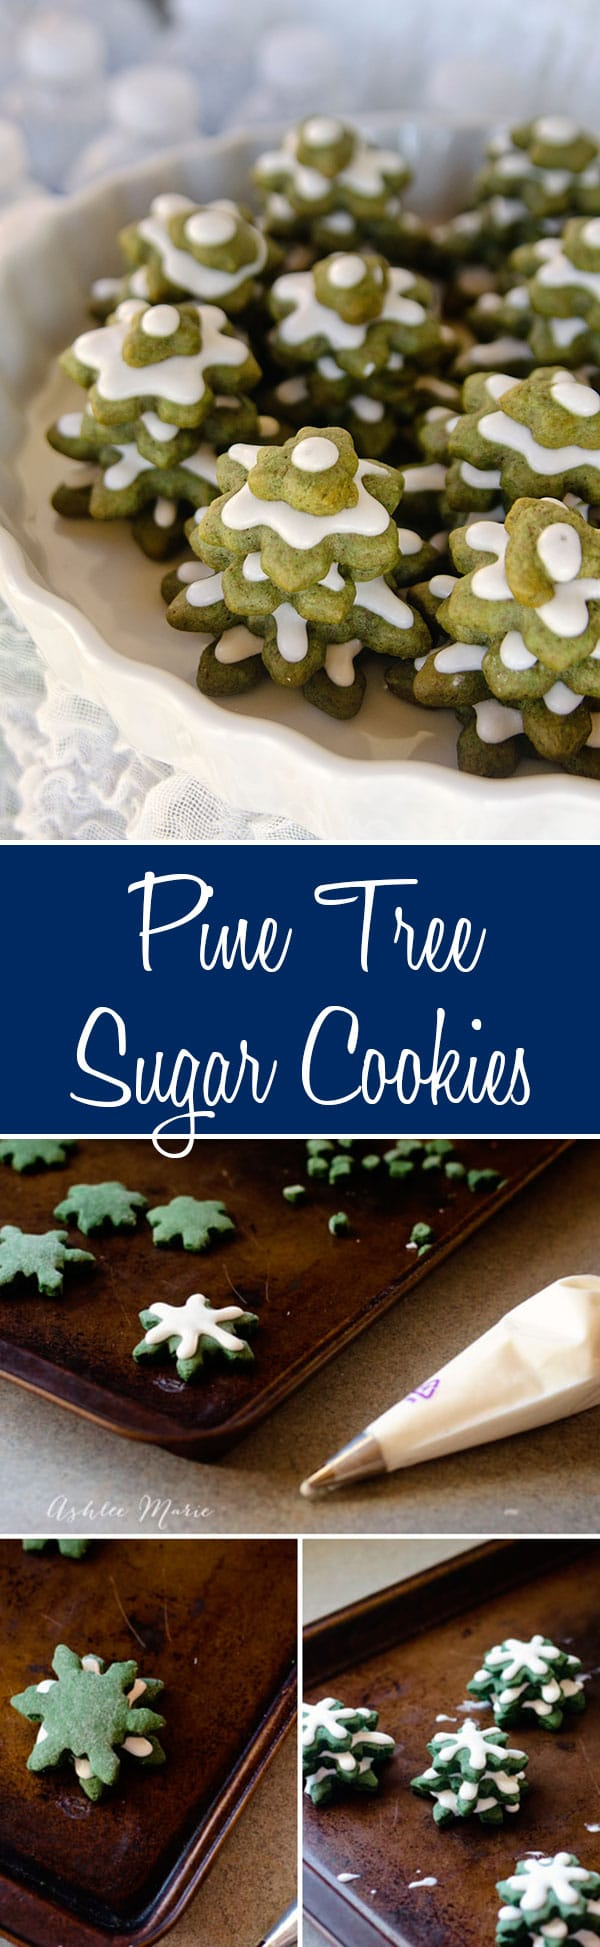 use green sugar cookies to create layered cookies to look like pine trees